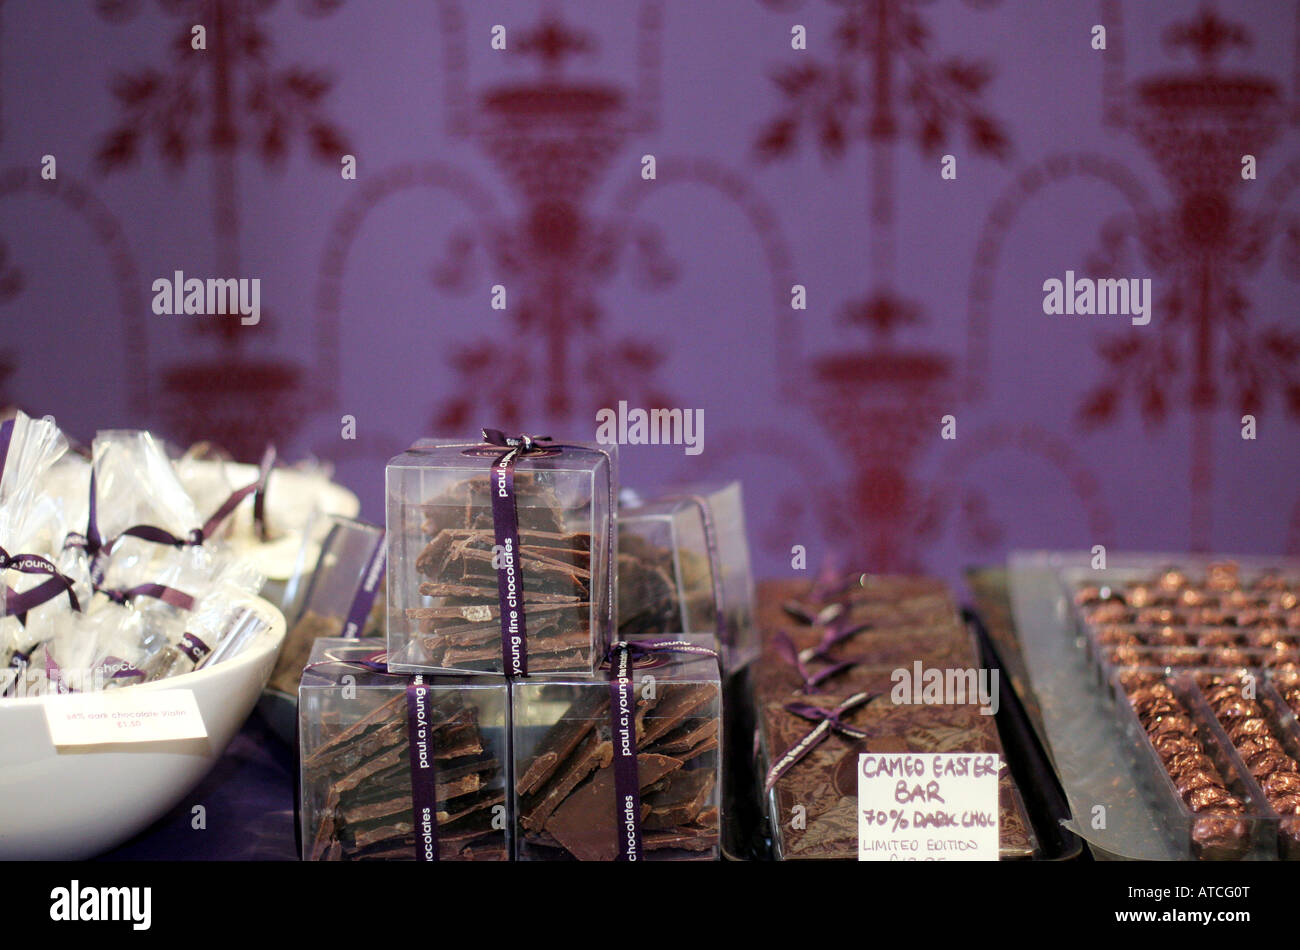 Selection of chocolate in Paul A Young Chocolatier shop Camden Passage Islington London UK - Stock Image